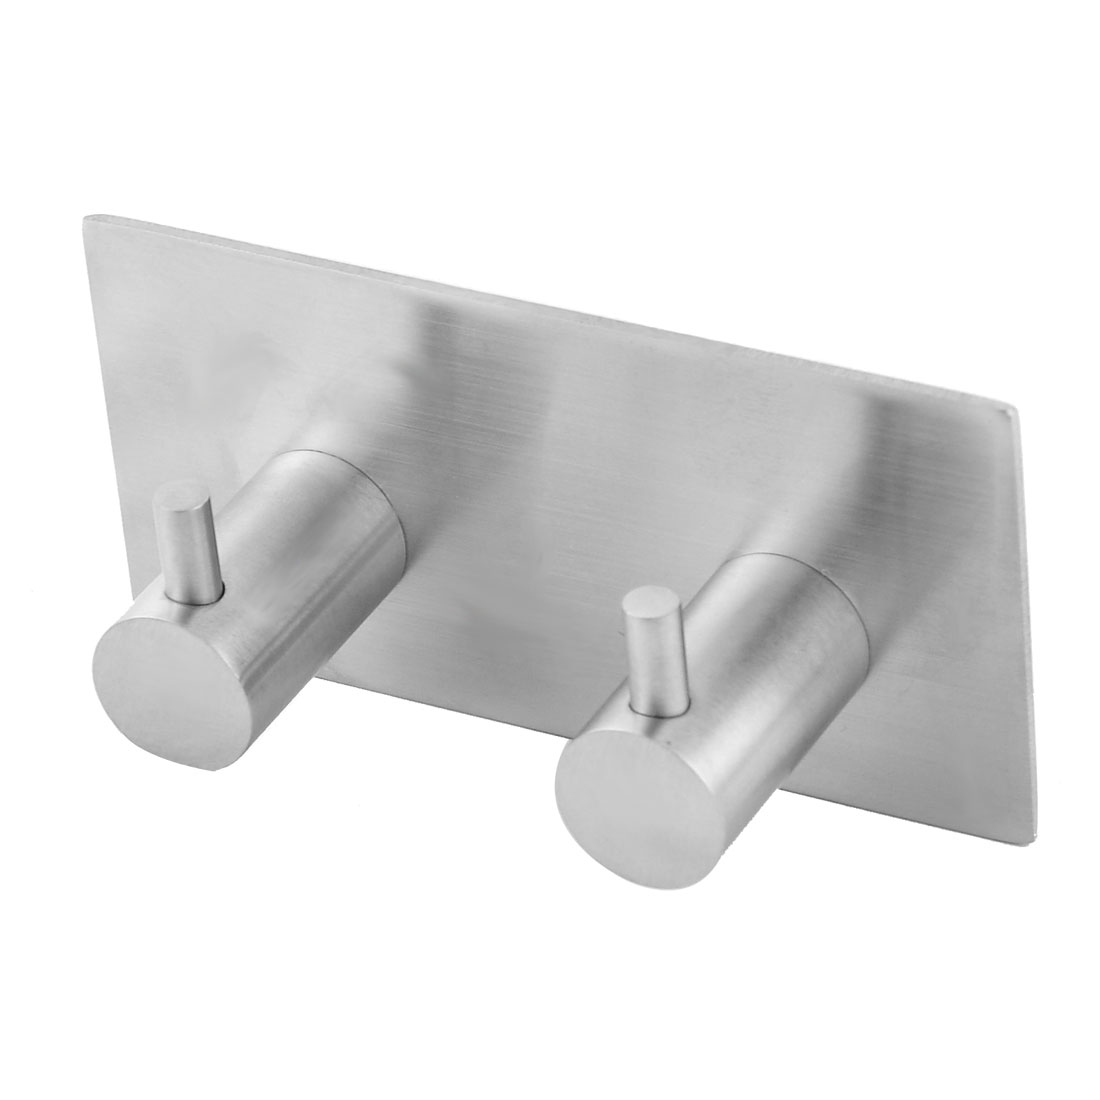 Home Metal Self-adhesive Double Hooks Clothes Towel Hanger Silver Tone